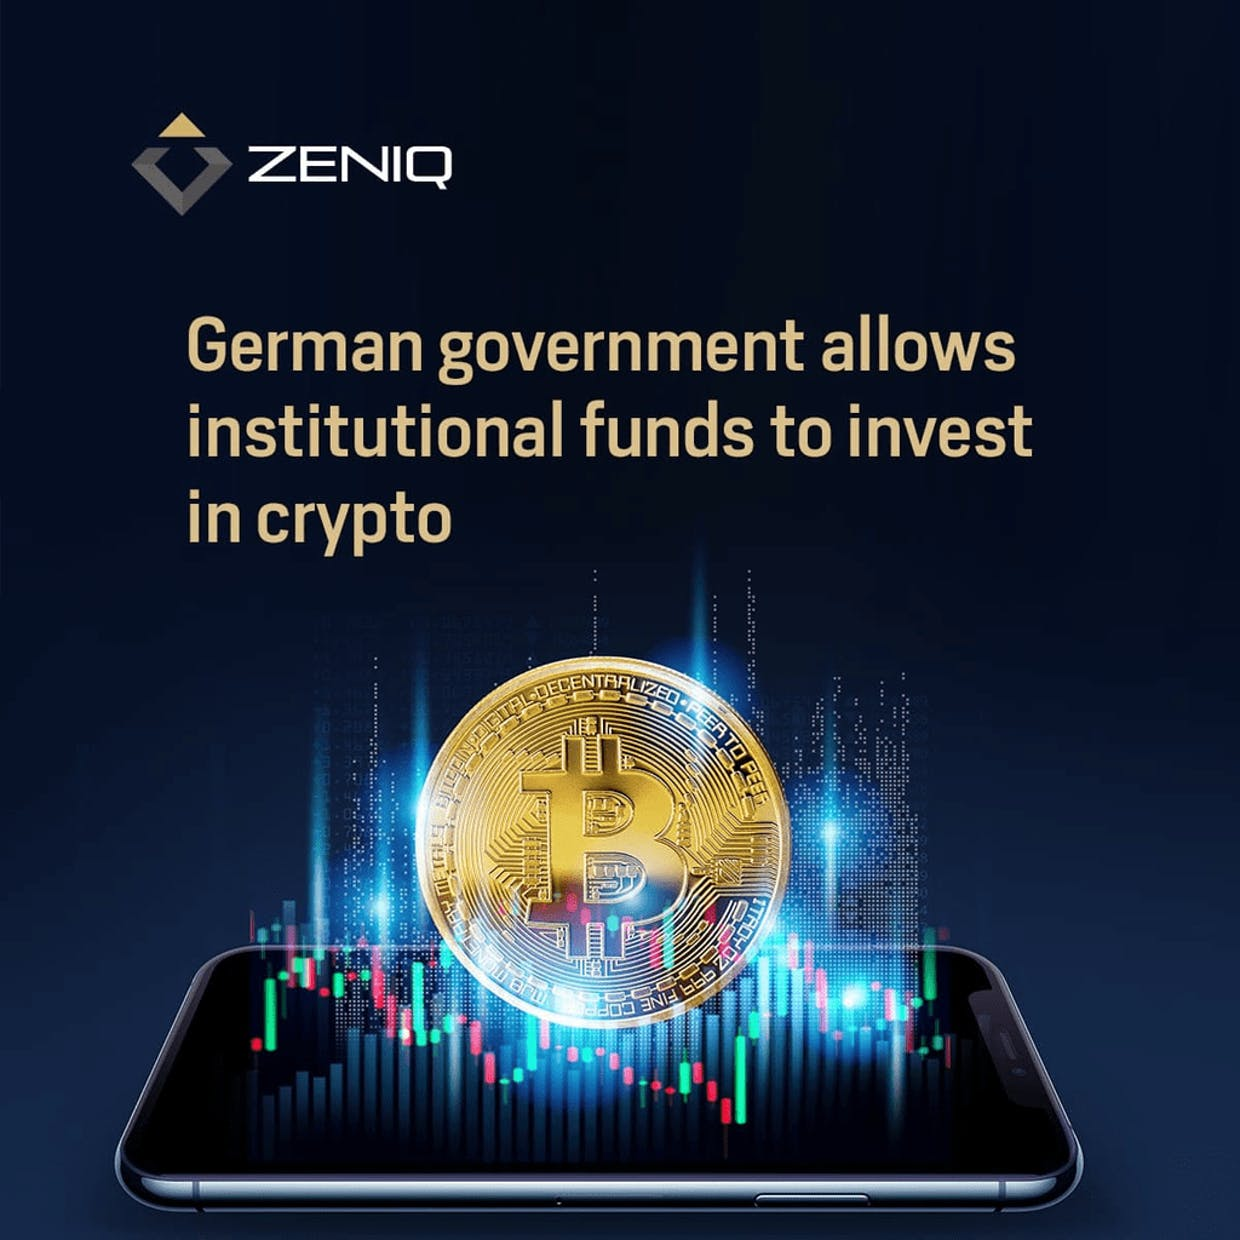 German government has now allowed institutional funds to invest in crypto.Crypto is finding its way into more and more areas. Even the German government has now allowed institutional funds to invest in crypto.